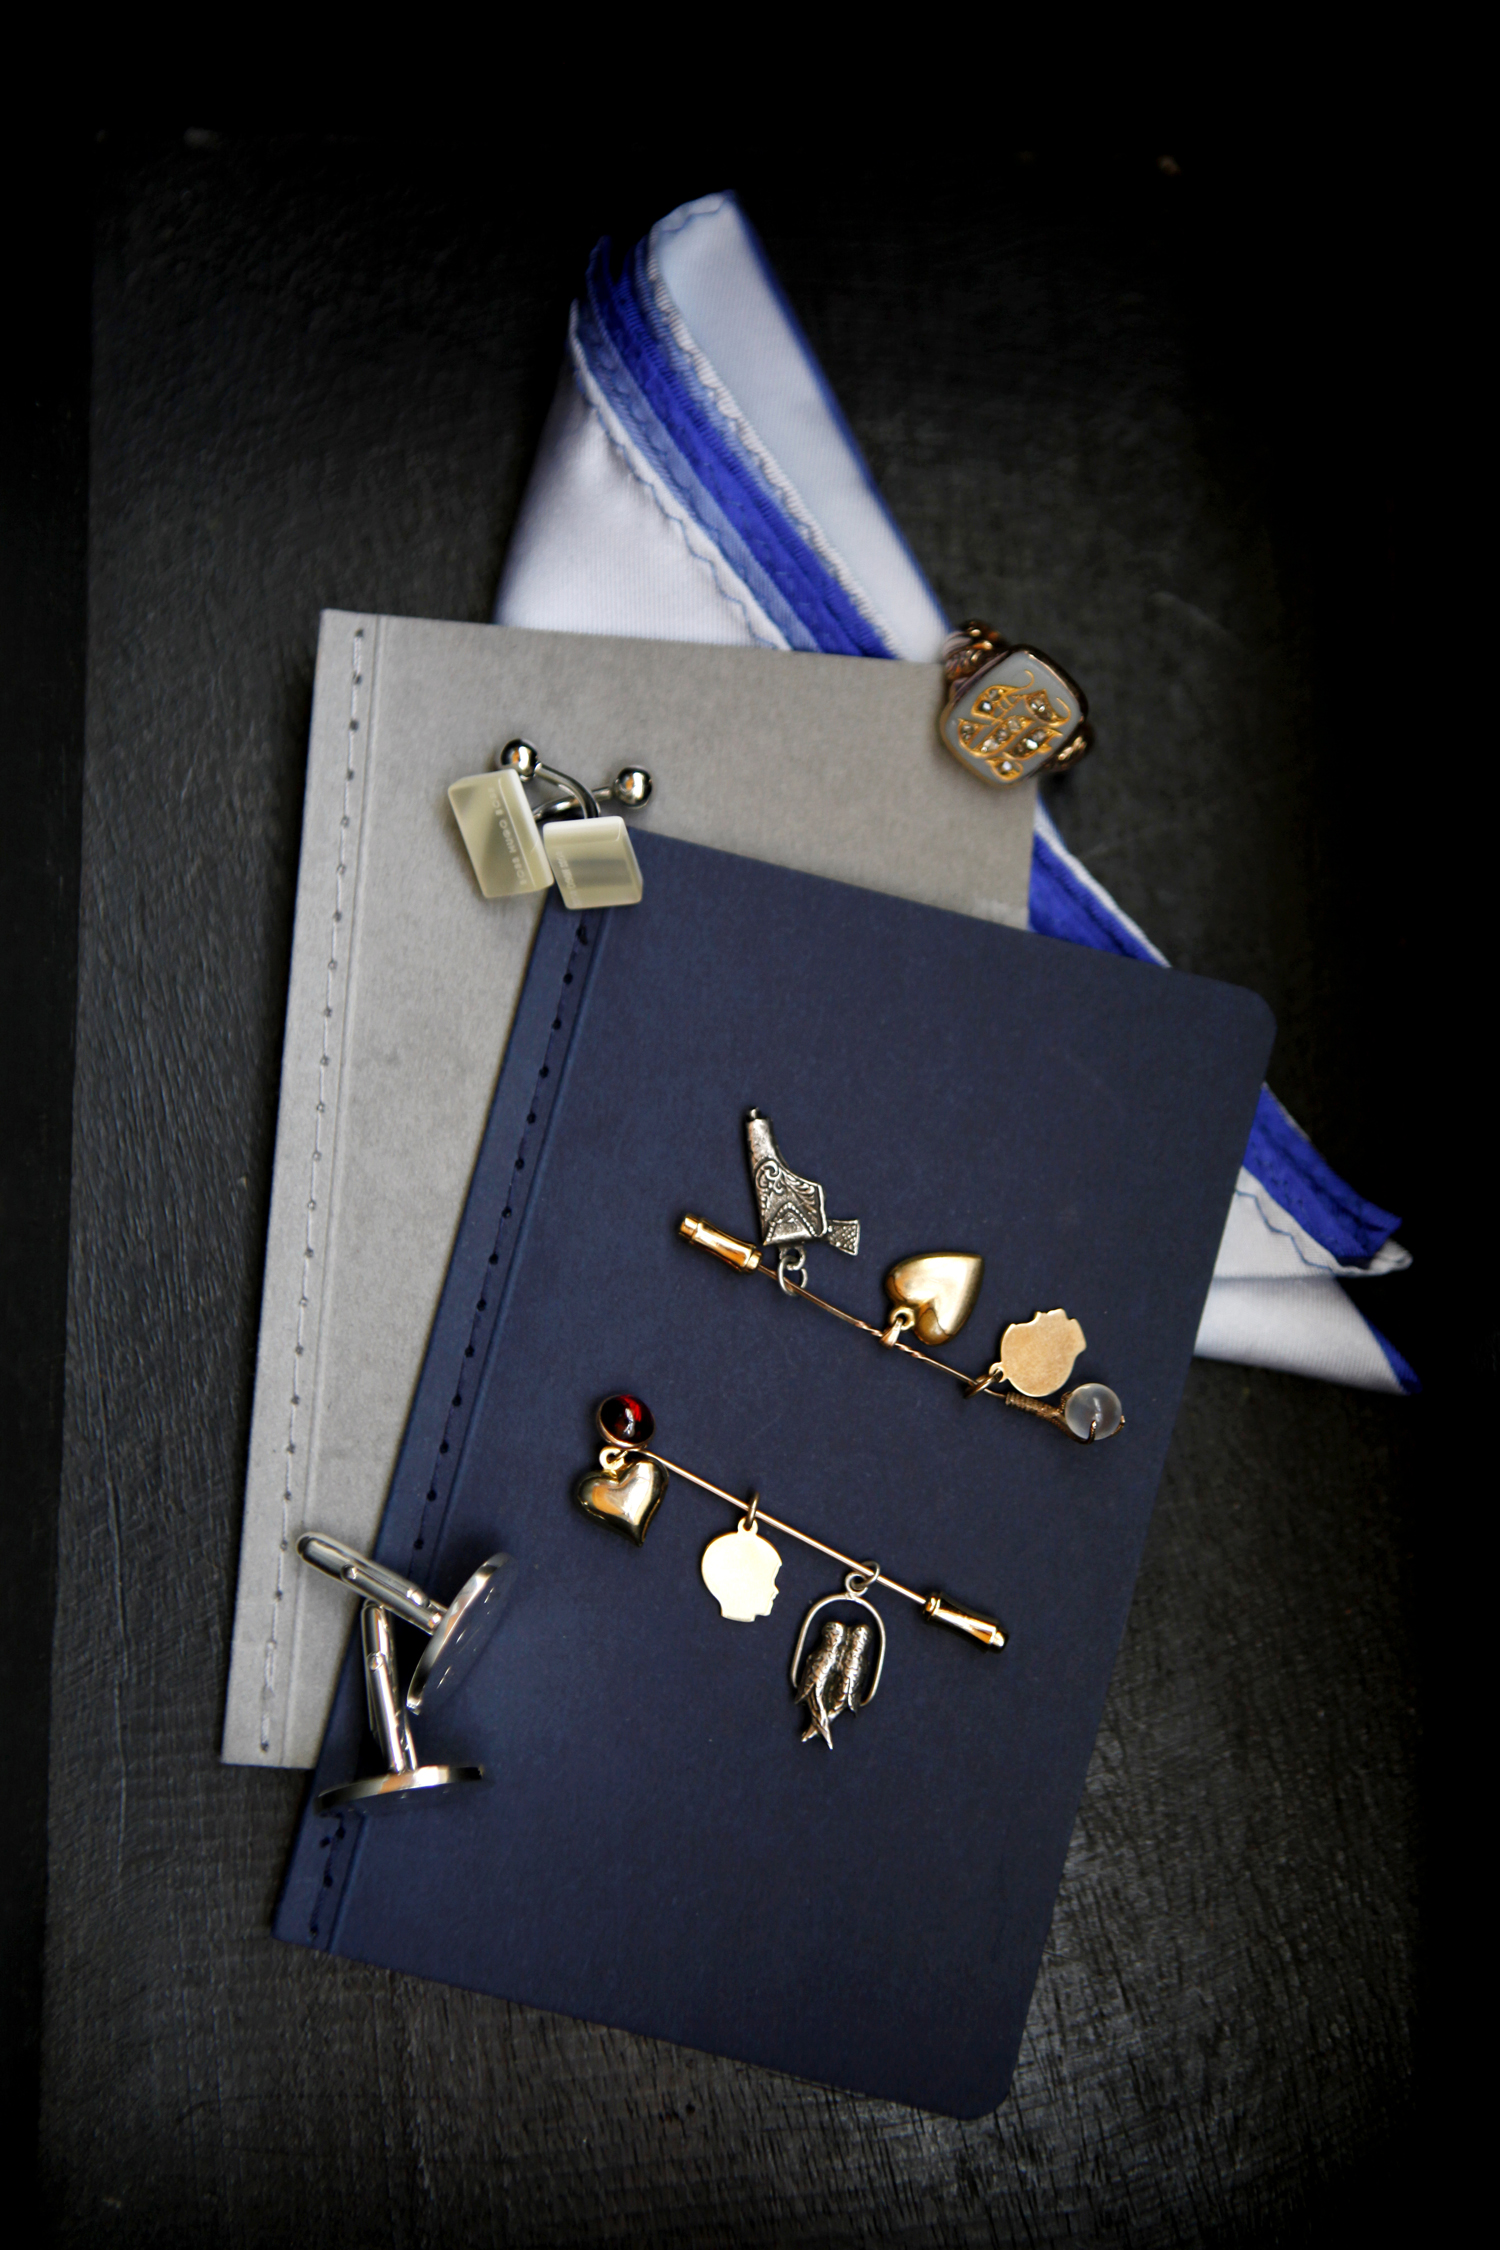 tommy-steve-wedding-accessories